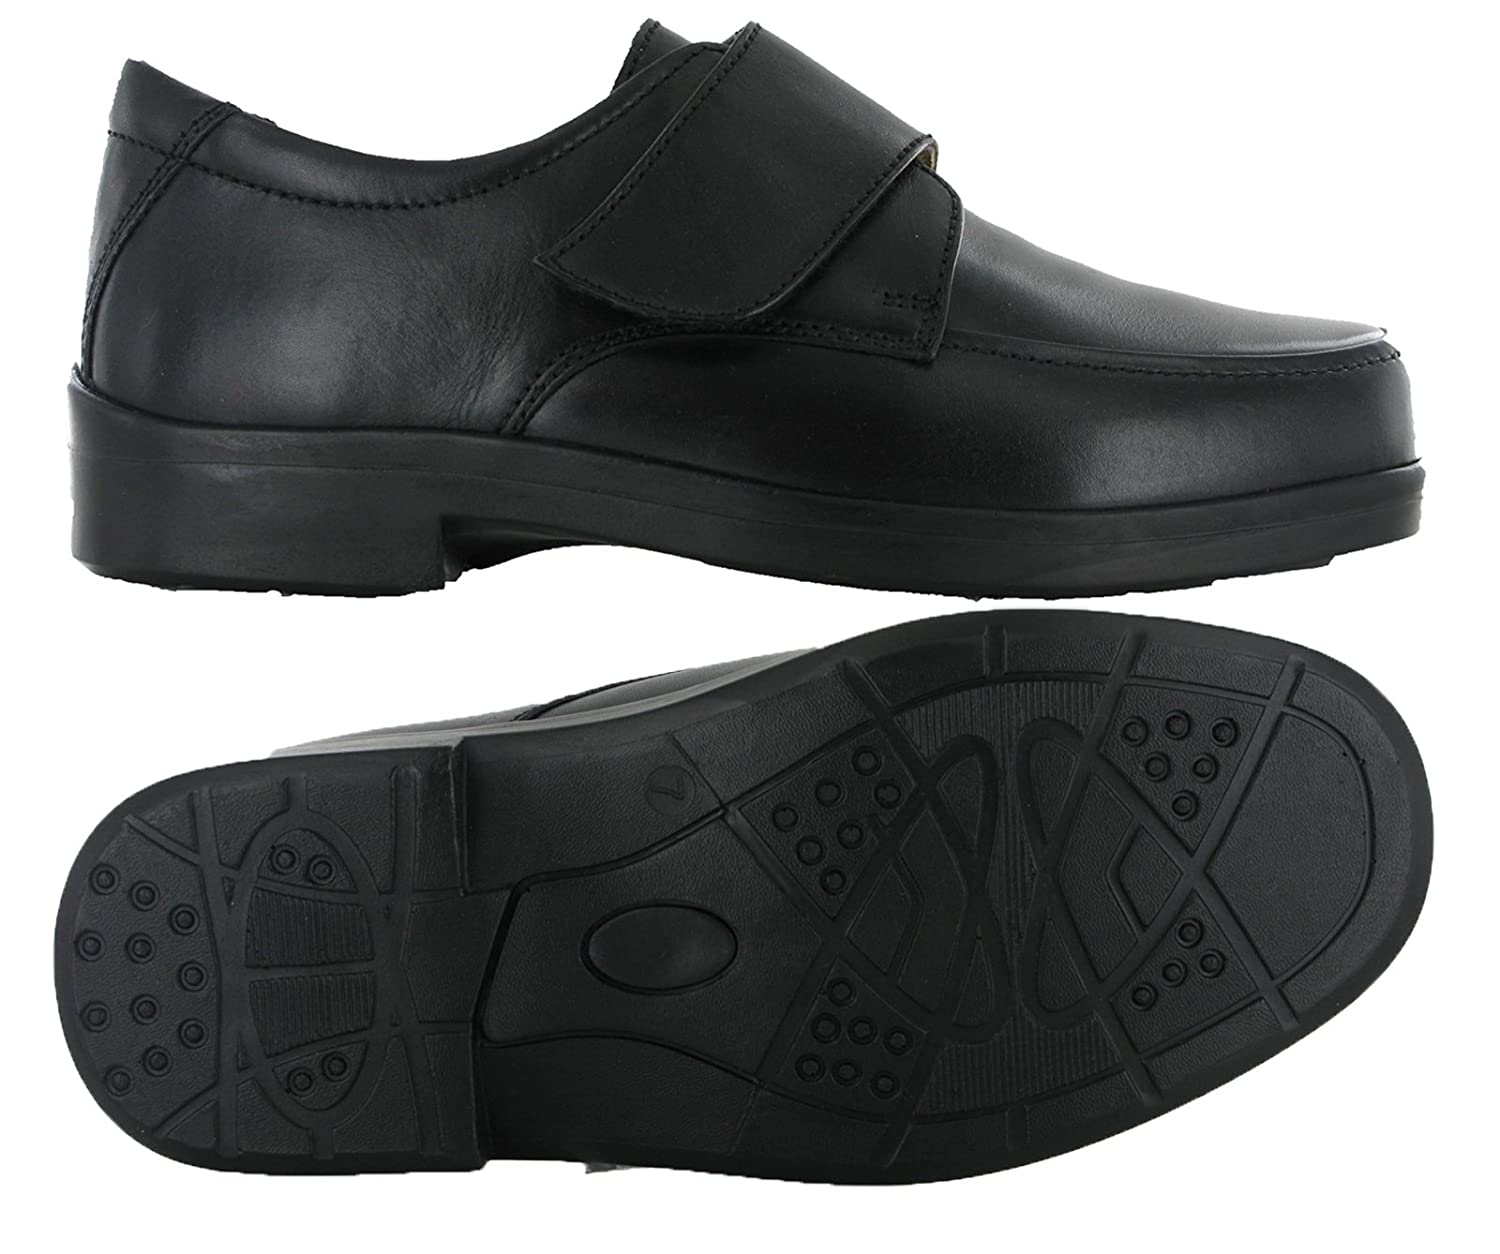 47bb7e1f Roamer Wide Fit EEE Velcro Strap Flat Leather Smat Casual Shoes:  Amazon.co.uk: Shoes & Bags